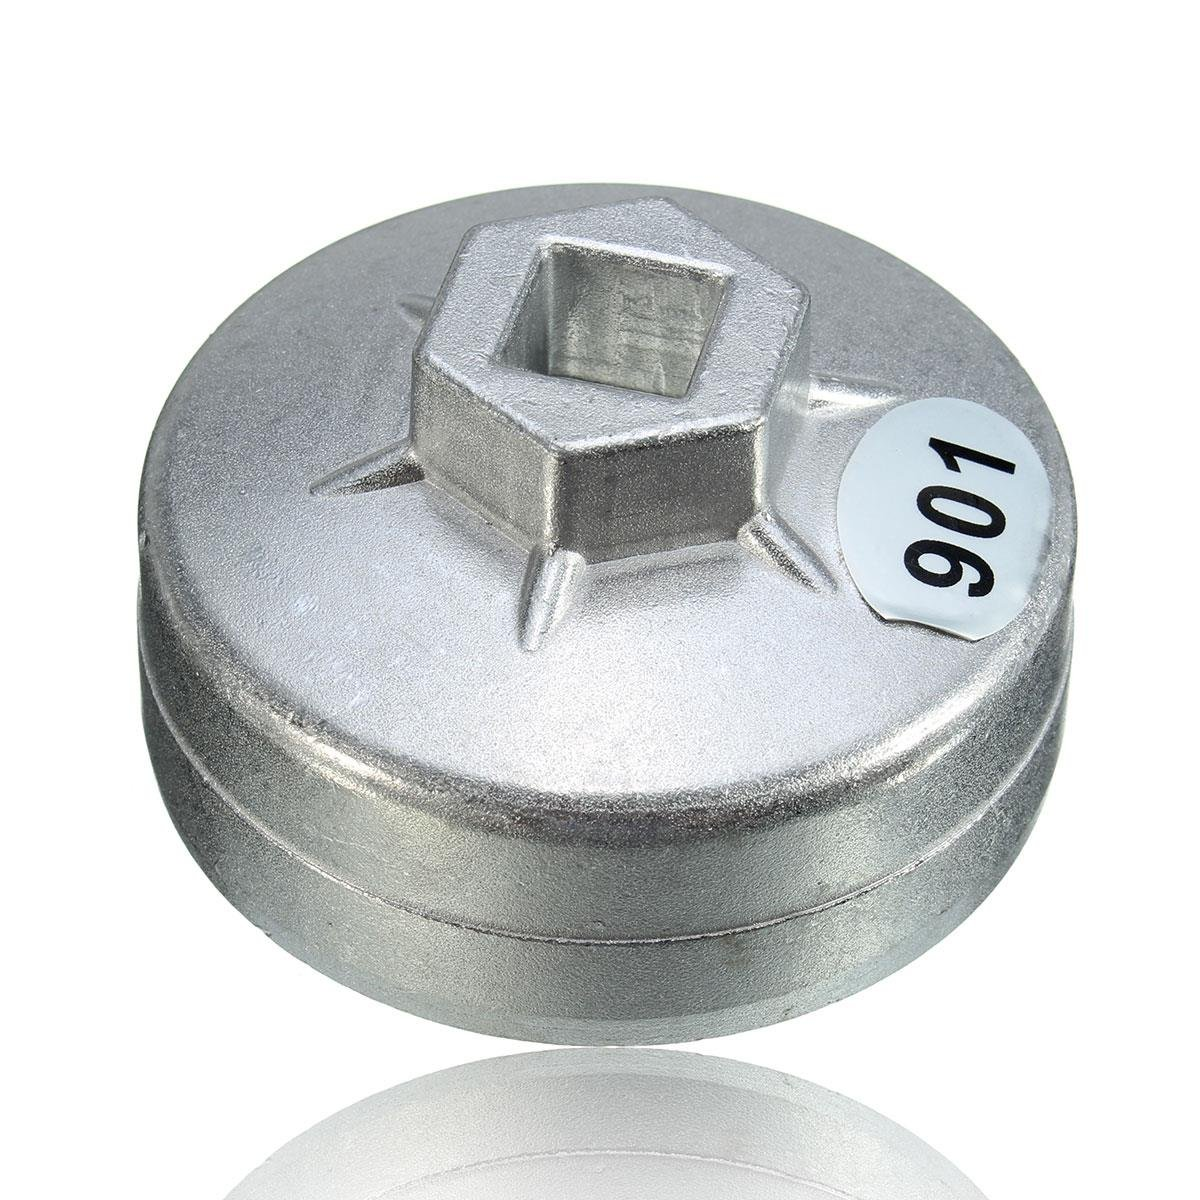 CALAP-STORE - New Car 1/2 Drive 65mm 14 Flutes End Cap Oil Filter Wrench Auto Tool for Toyota/Honda